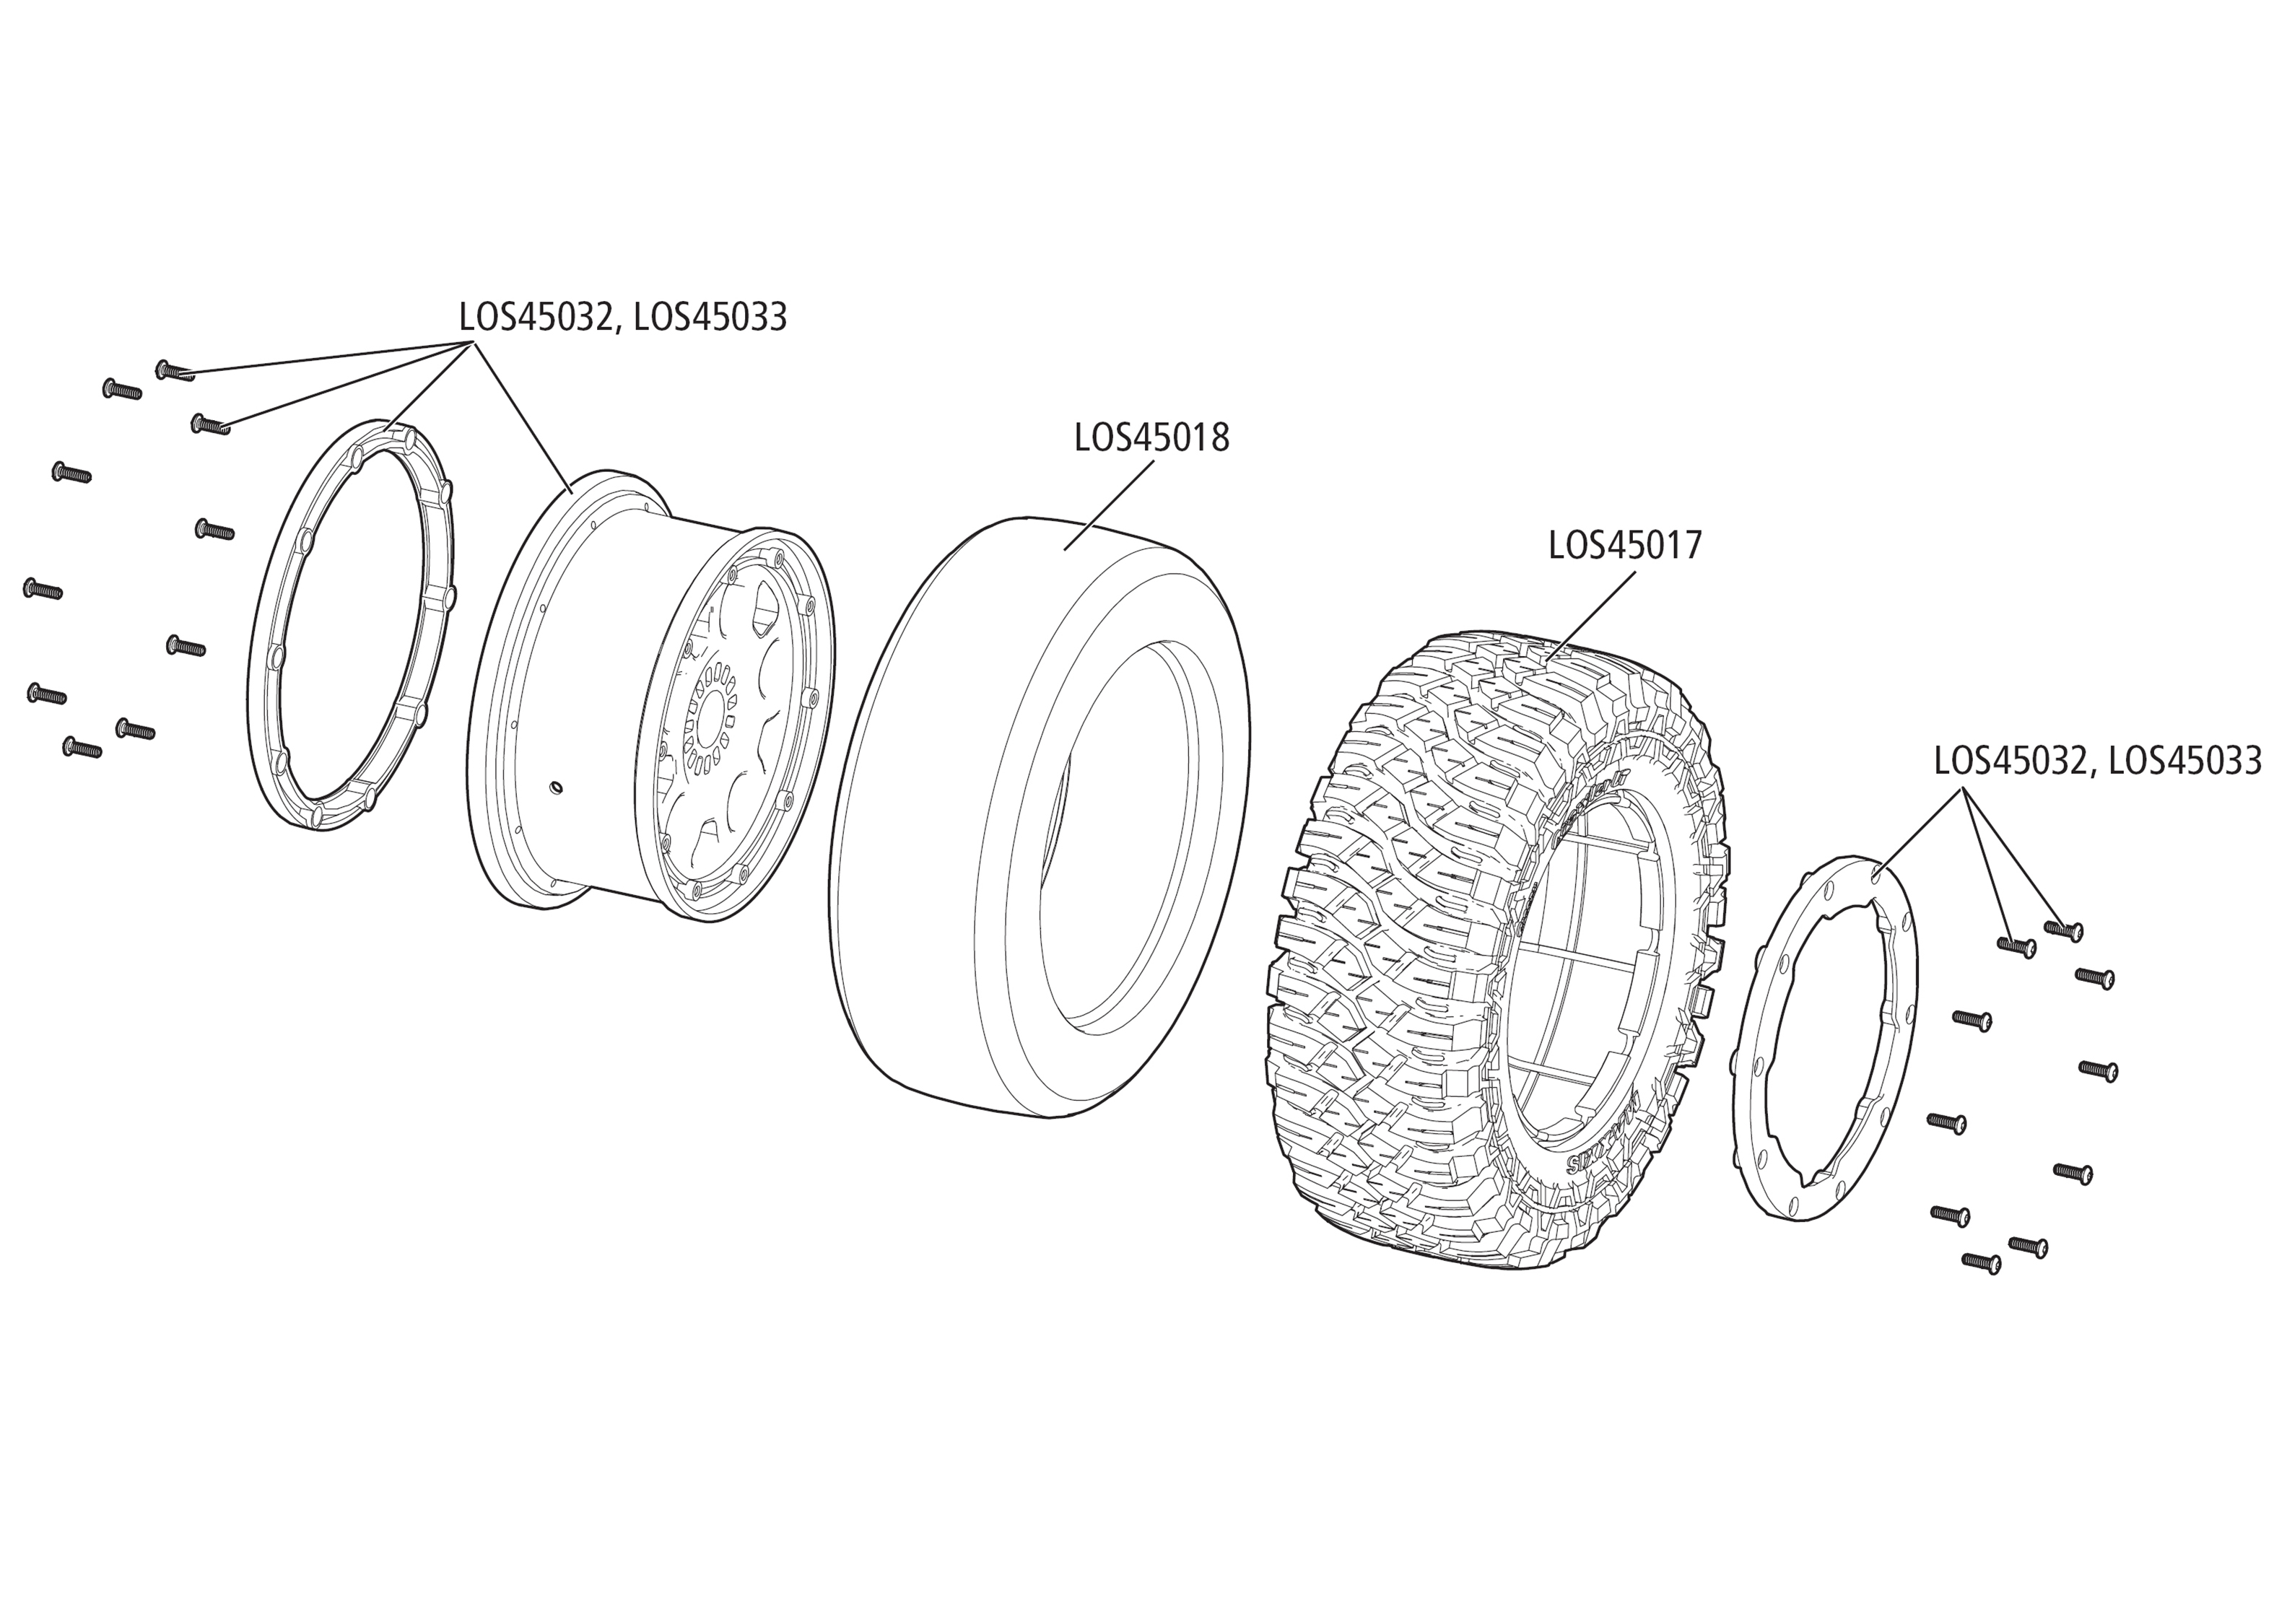 Exploded view: Losi Desert Buggy XL-E 2.0: 1:5 4WD SMART